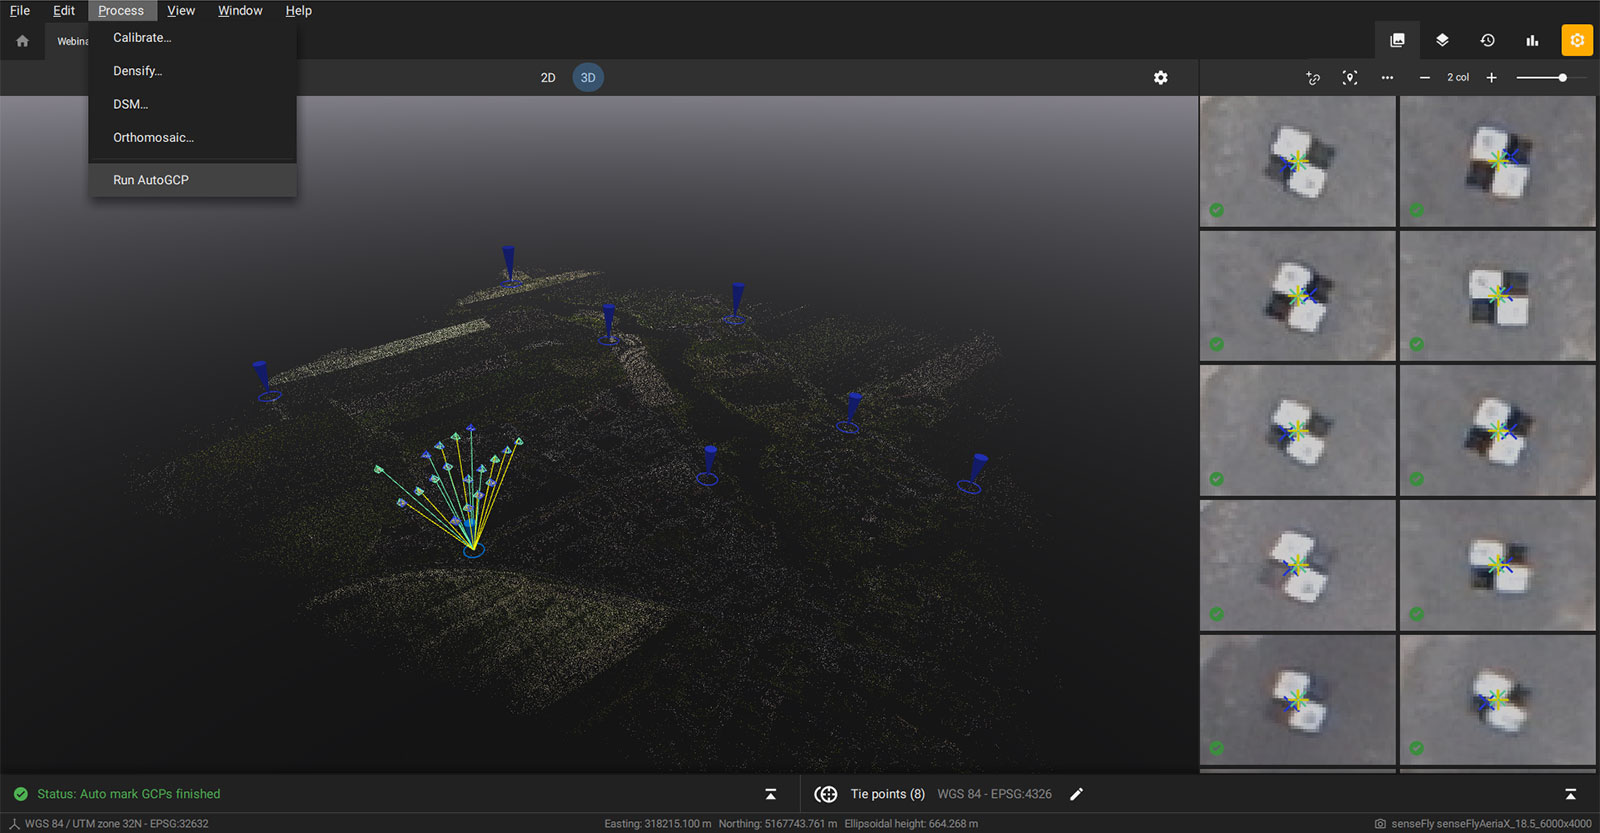 AutoGCP feature in PIX4Dmatic